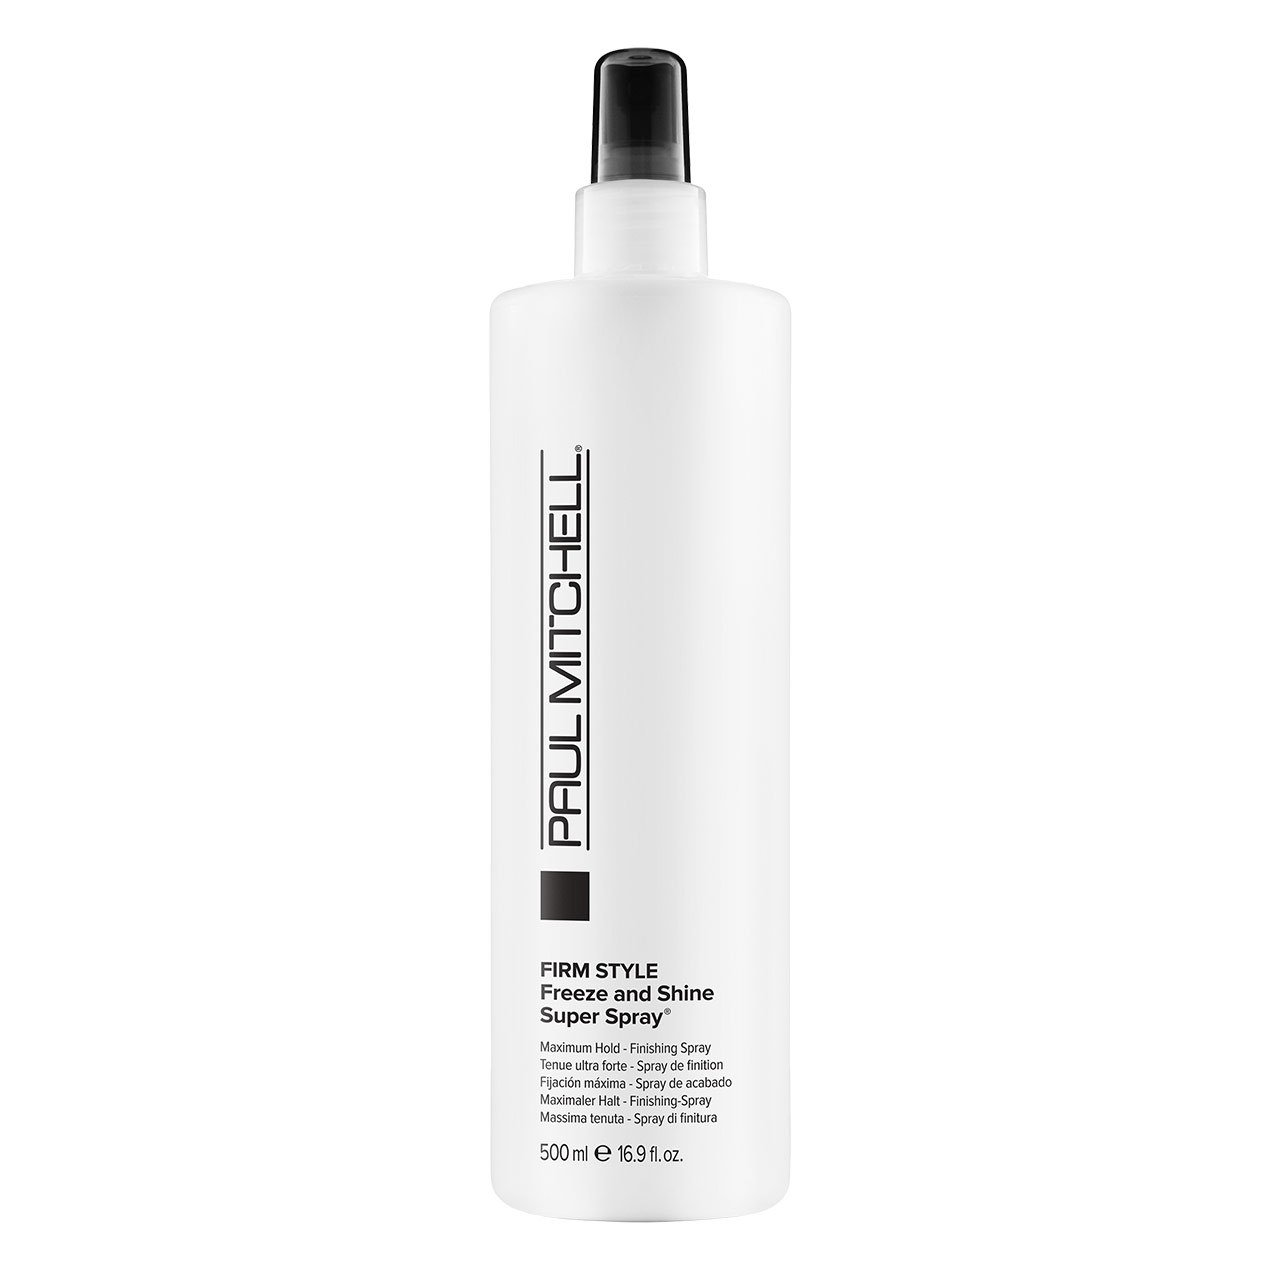 Paul Mitchell - Freeze and Shine Super Styling Spray 500 ml